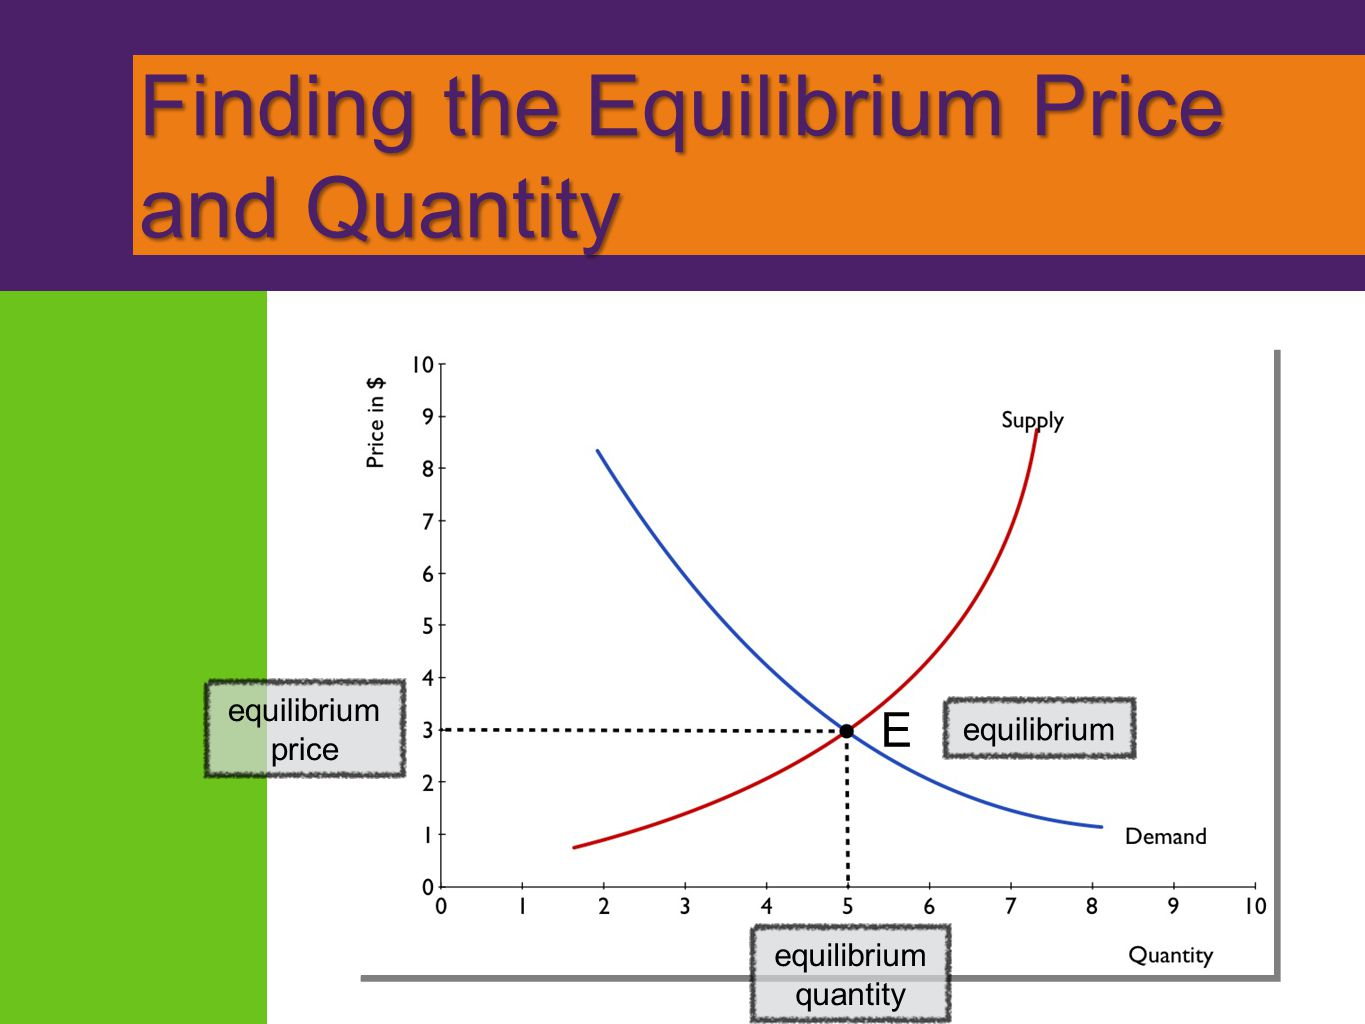 Finding the Equilibrium Price and Quantity